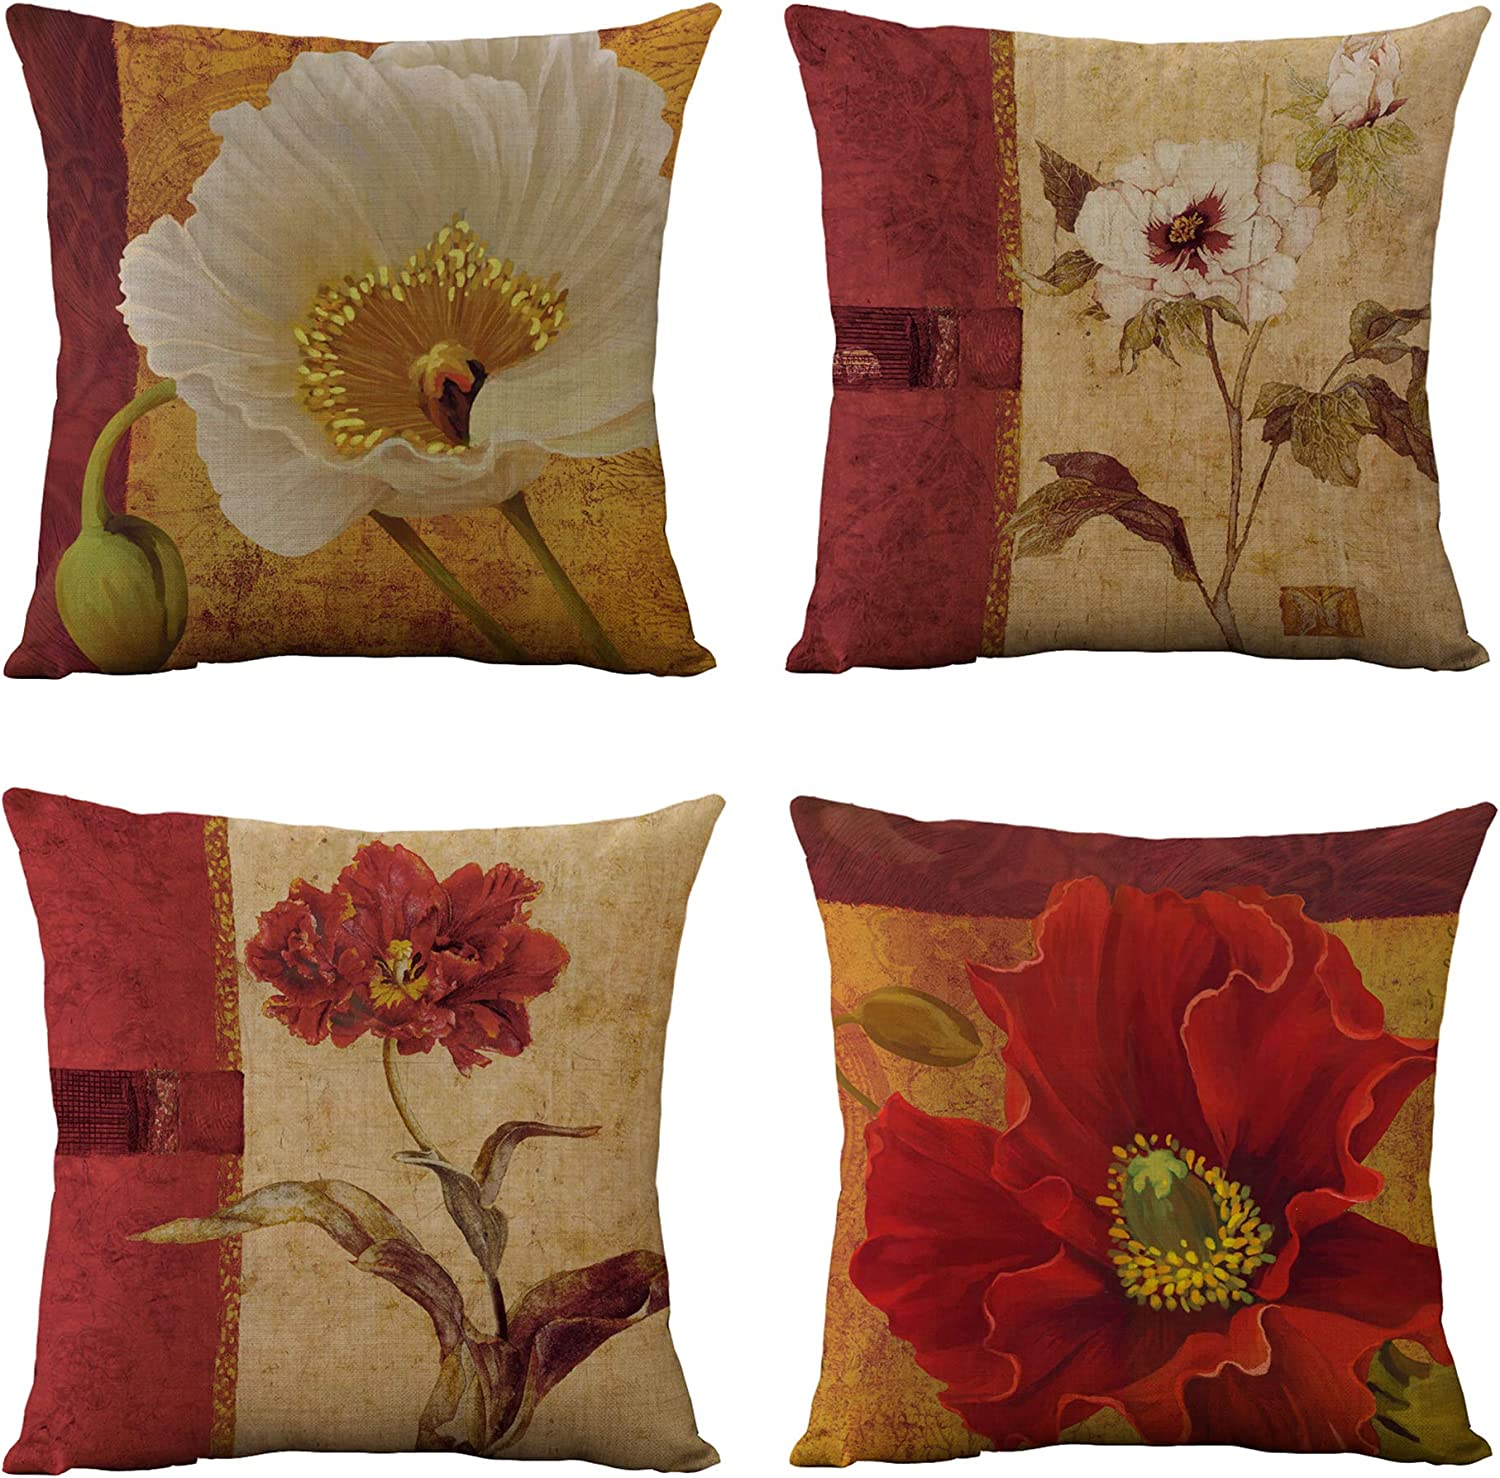 WOMHOPE Set of 4 Vintage Flower Throw Pillow Covers Pillow Cases Cushion Cases Burlap Toss 18 x 18 Inch for Living Room,Couch and Bed (Red Flower (Set of 4))